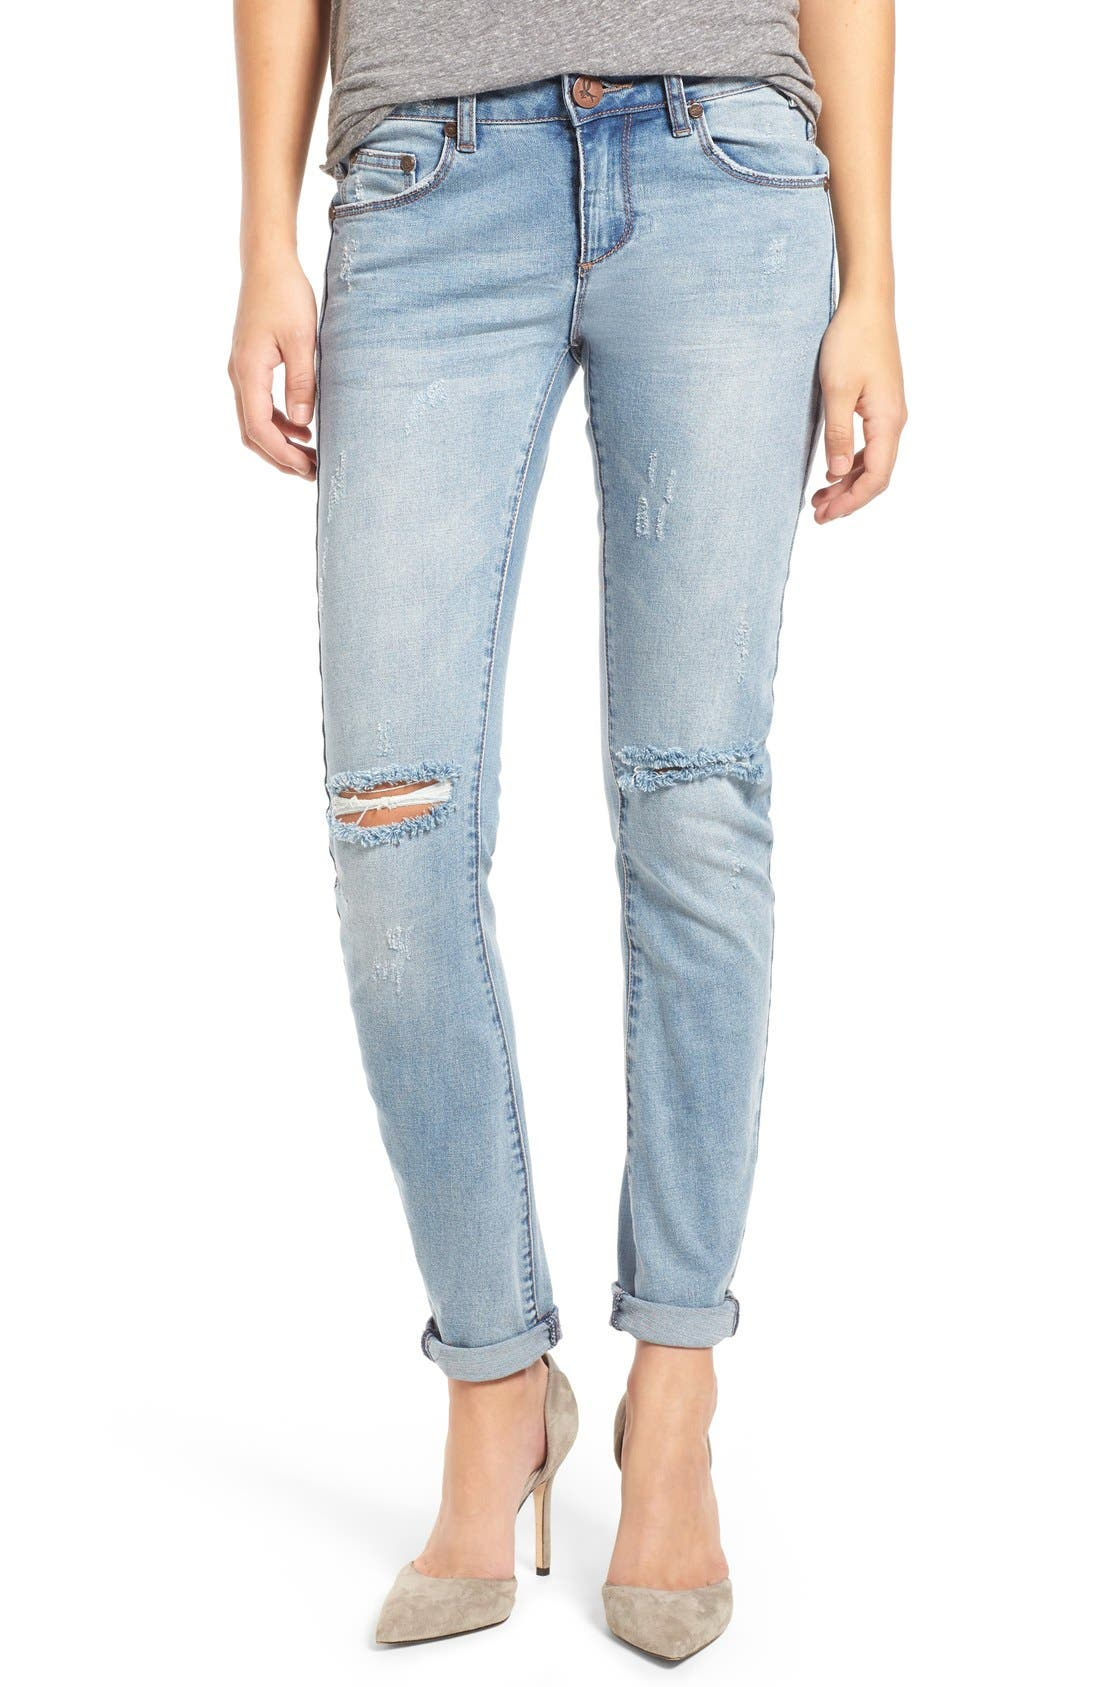 ONE TEASPOON, Distressed Skinny Jeans, Main thumbnail 1, color, 400